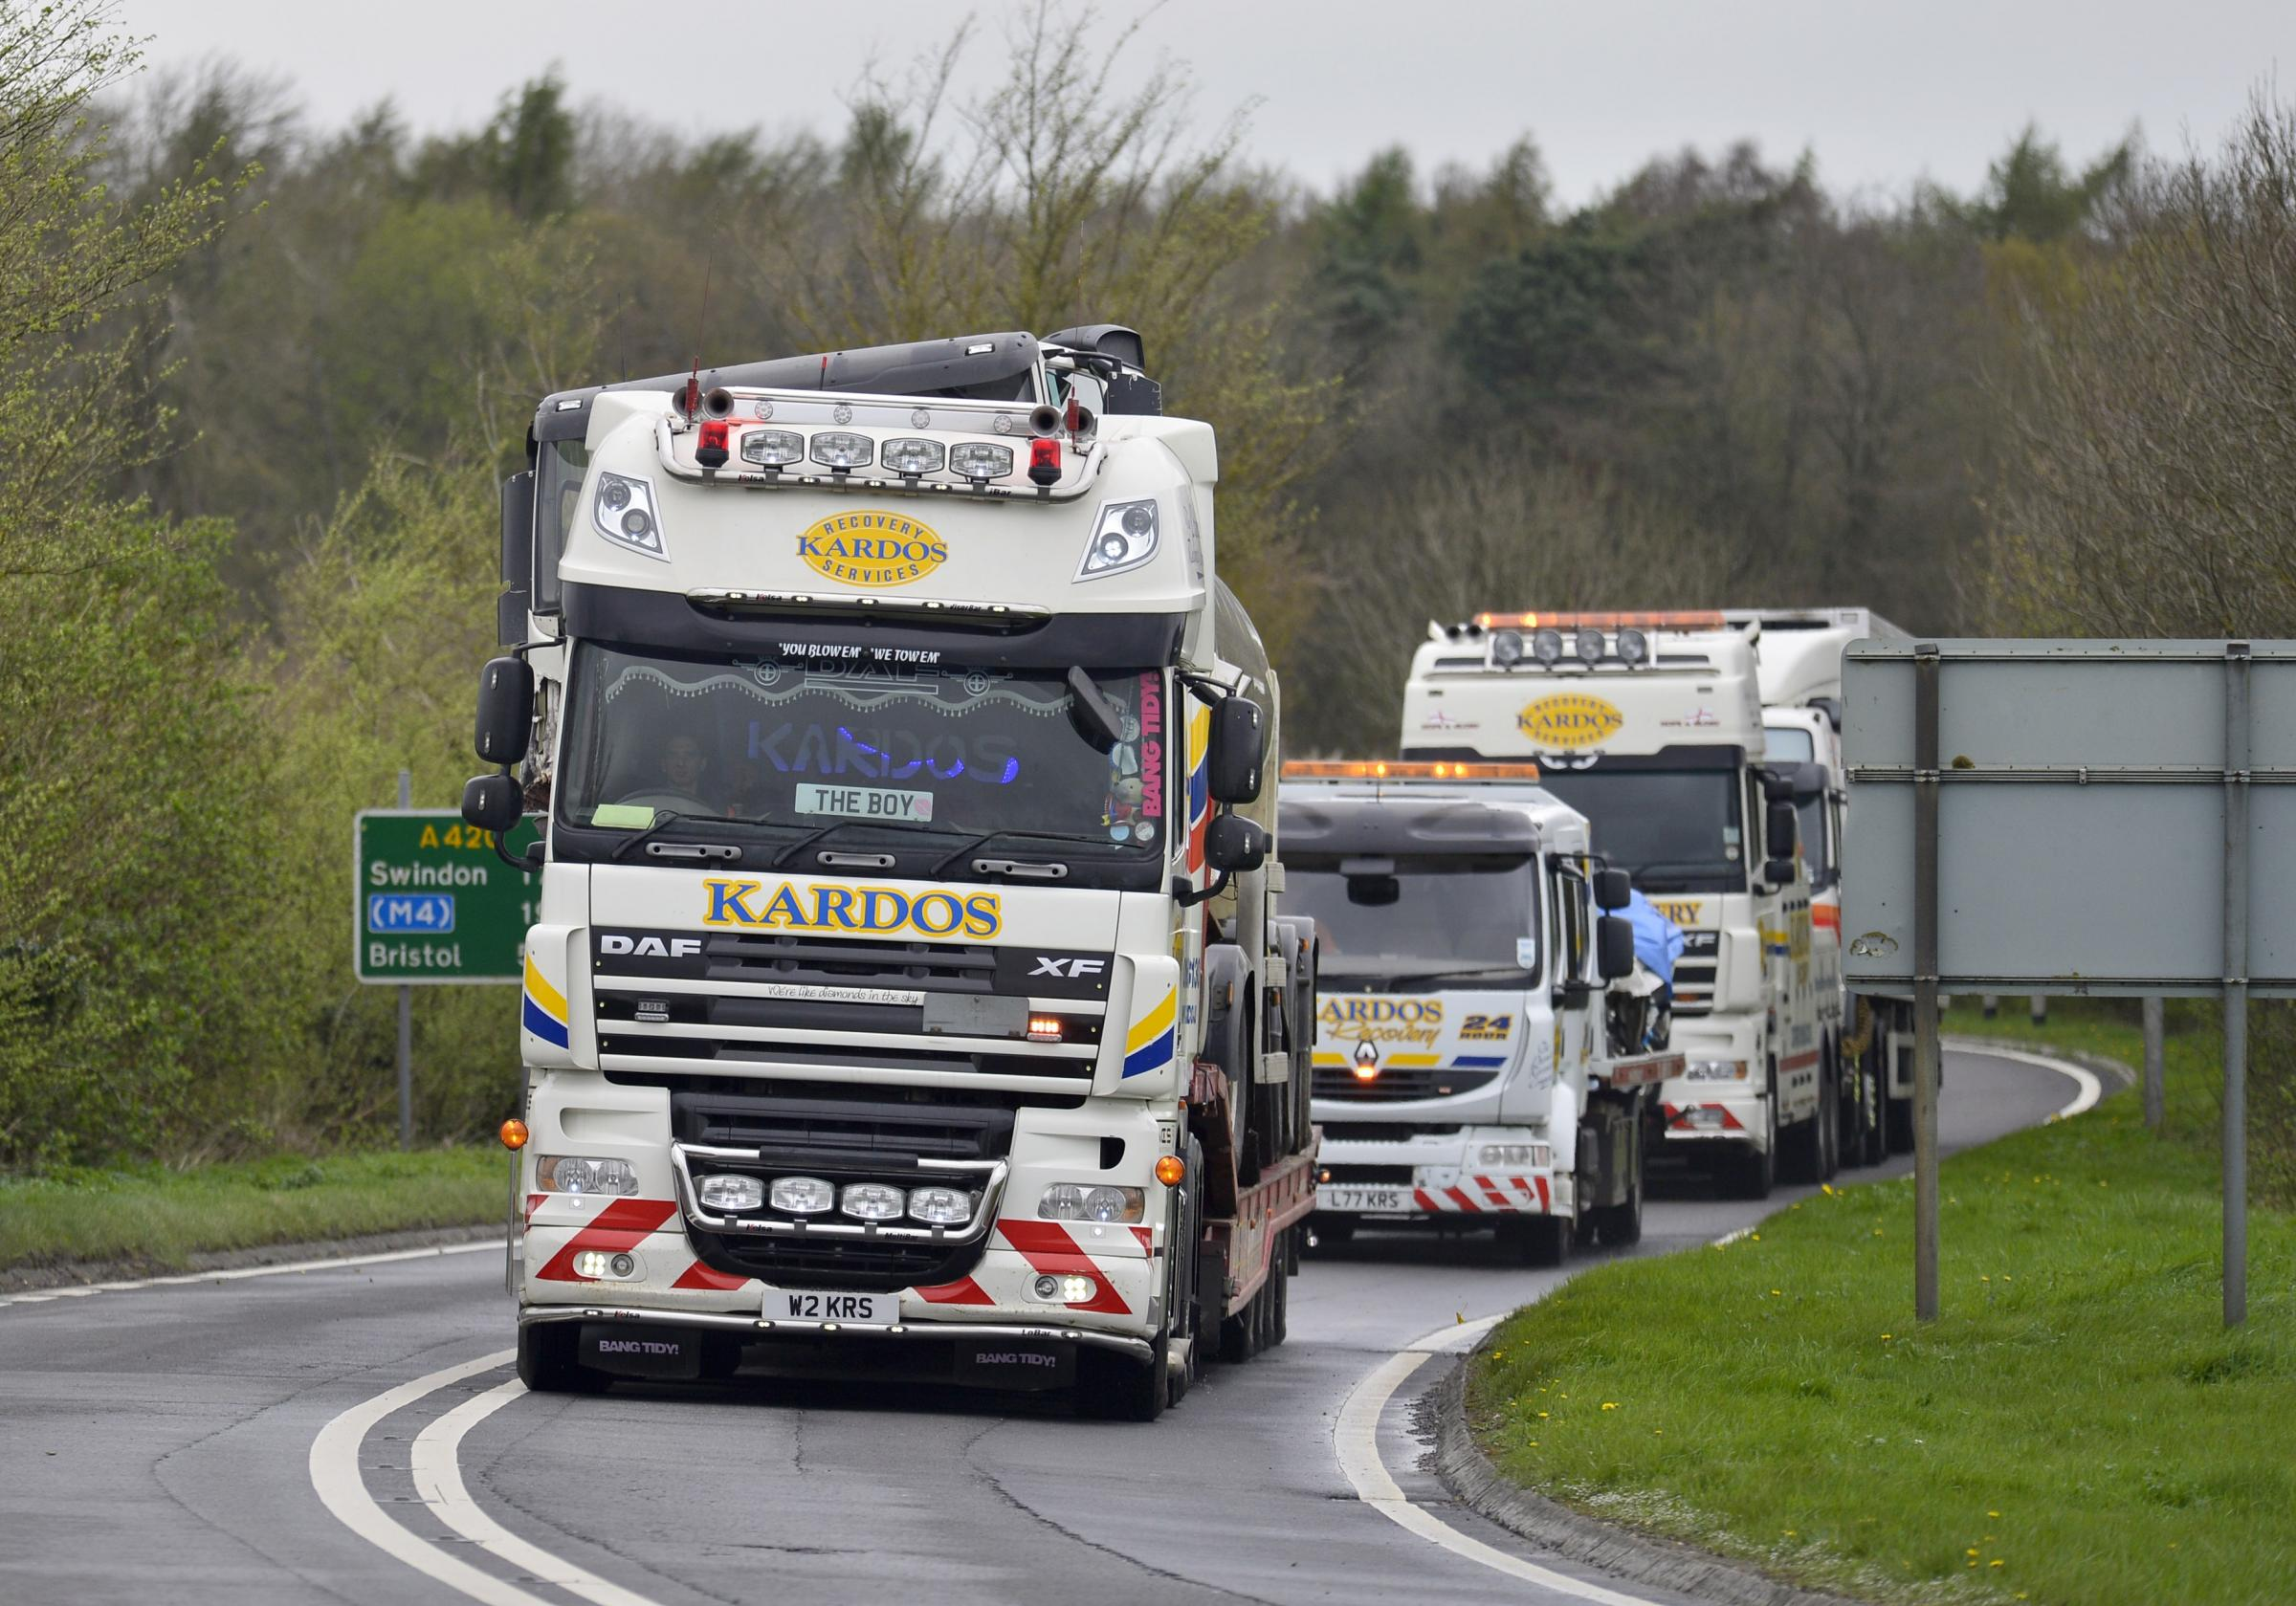 A man was killed in an accident involving two lorries on the A420